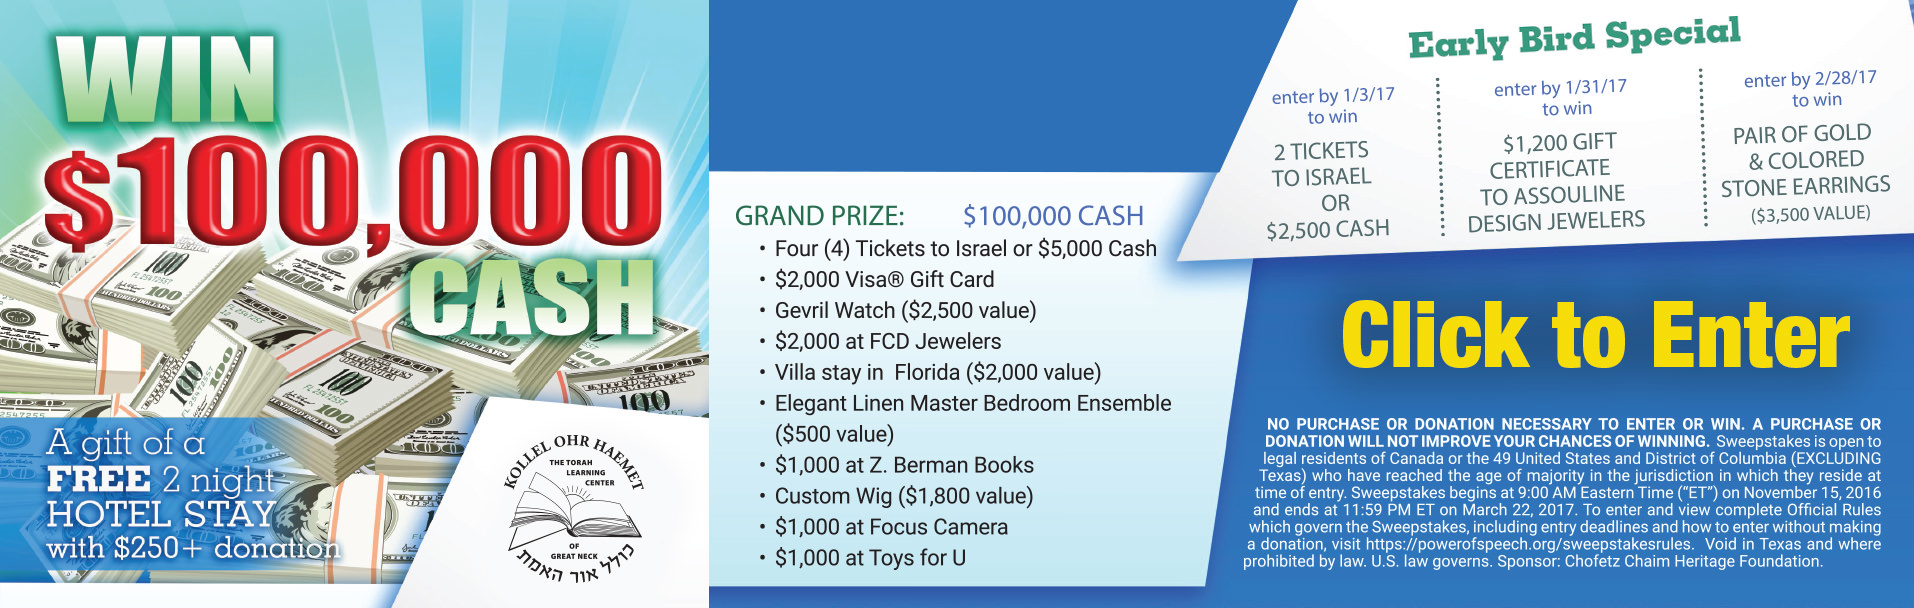 Kollel Great Neck $100,000 CASH Raffle Campaign